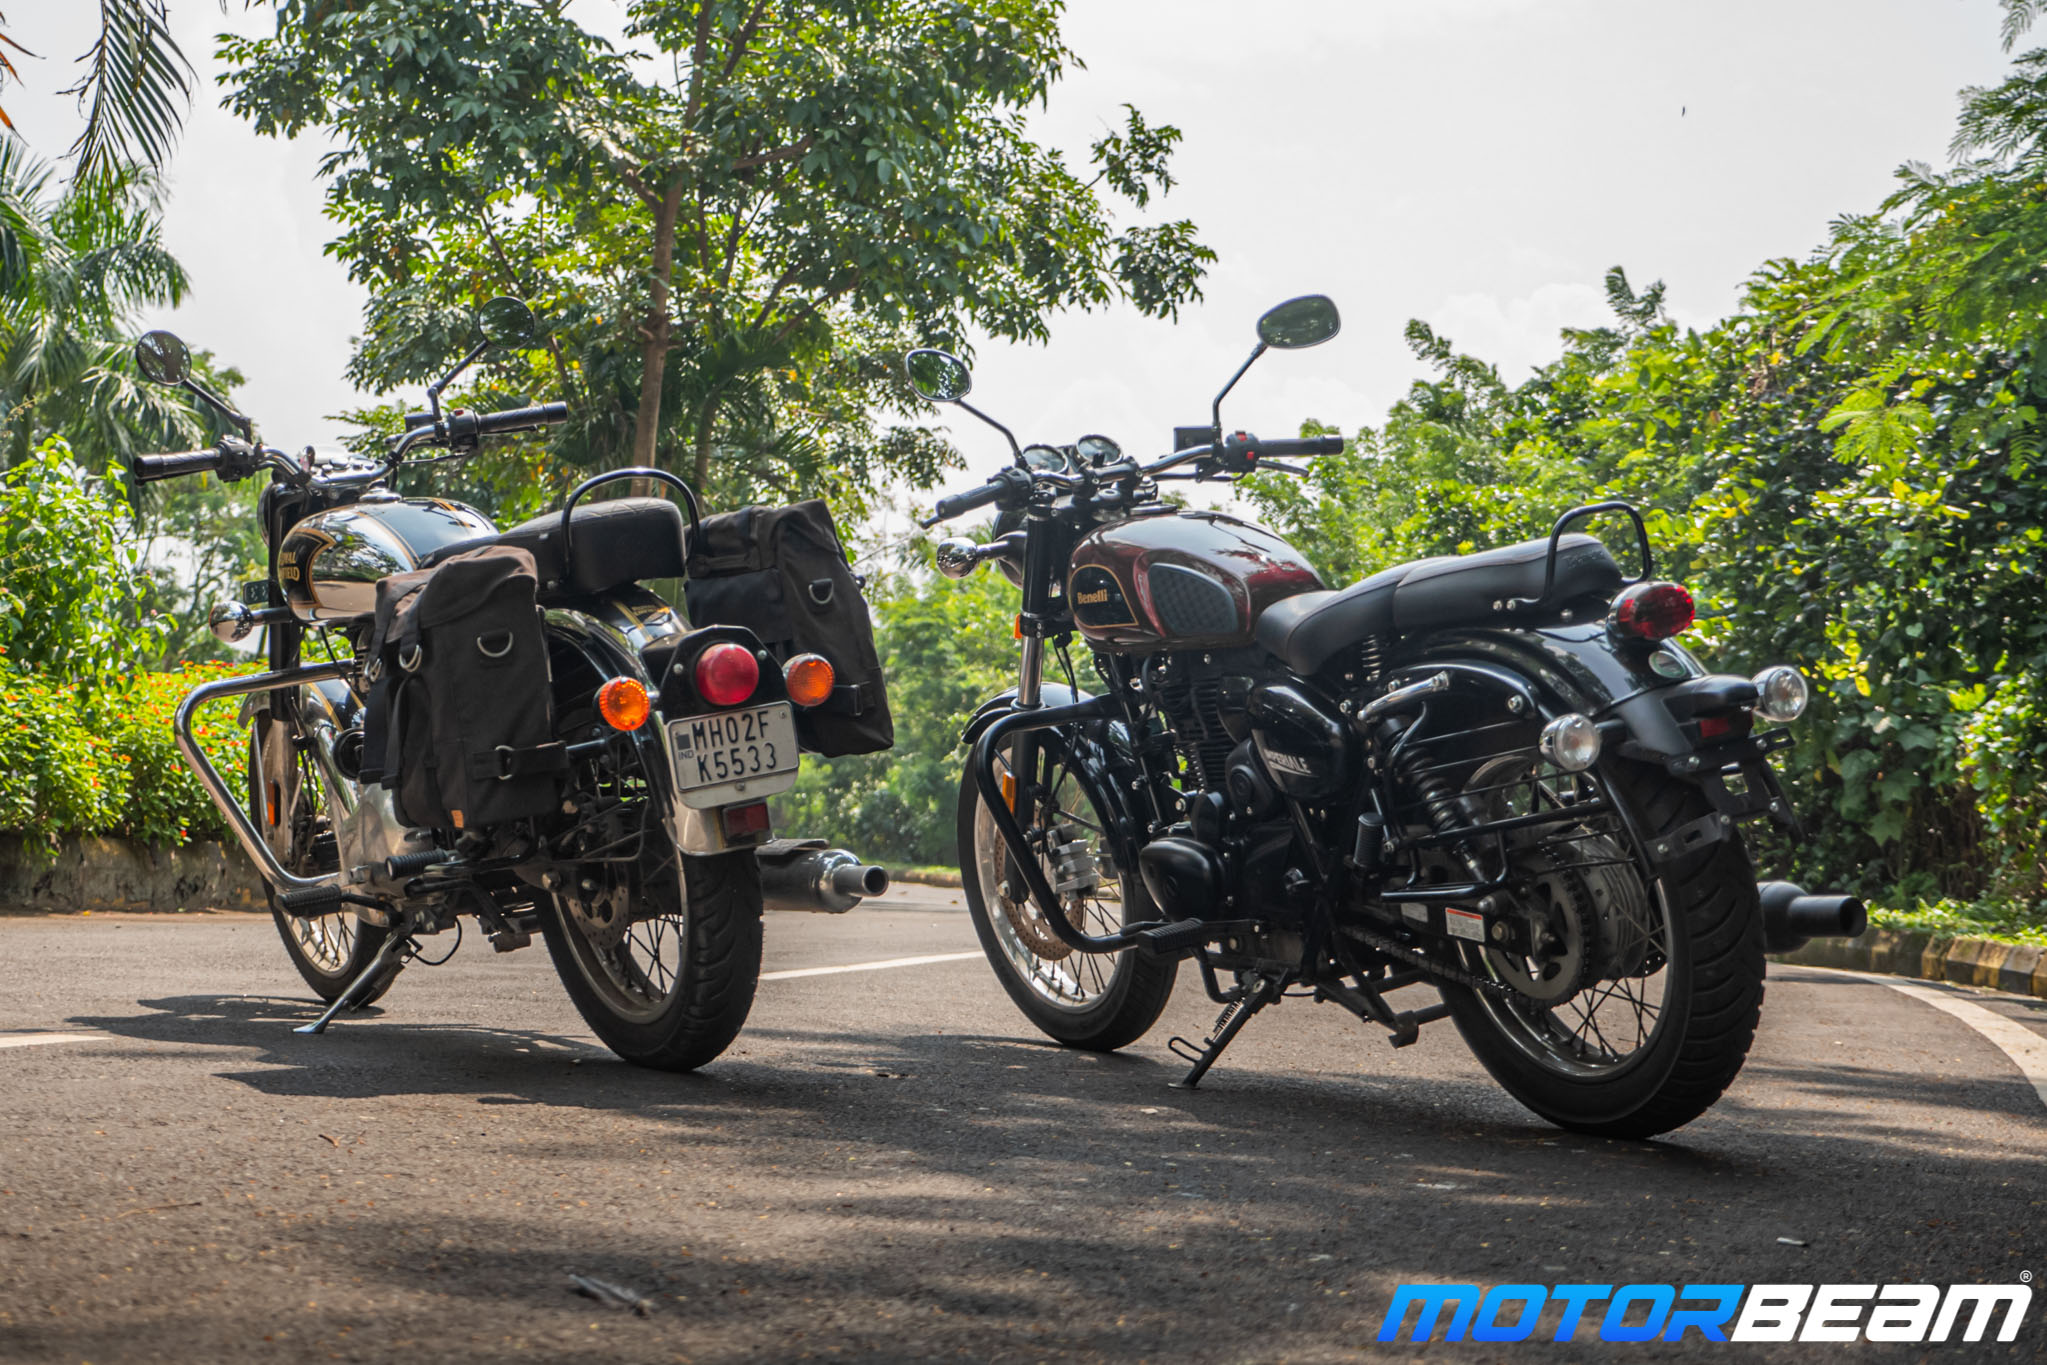 Benelli Imperiale 400 vs Royal Enfield Classic 350 Comparison Review 12